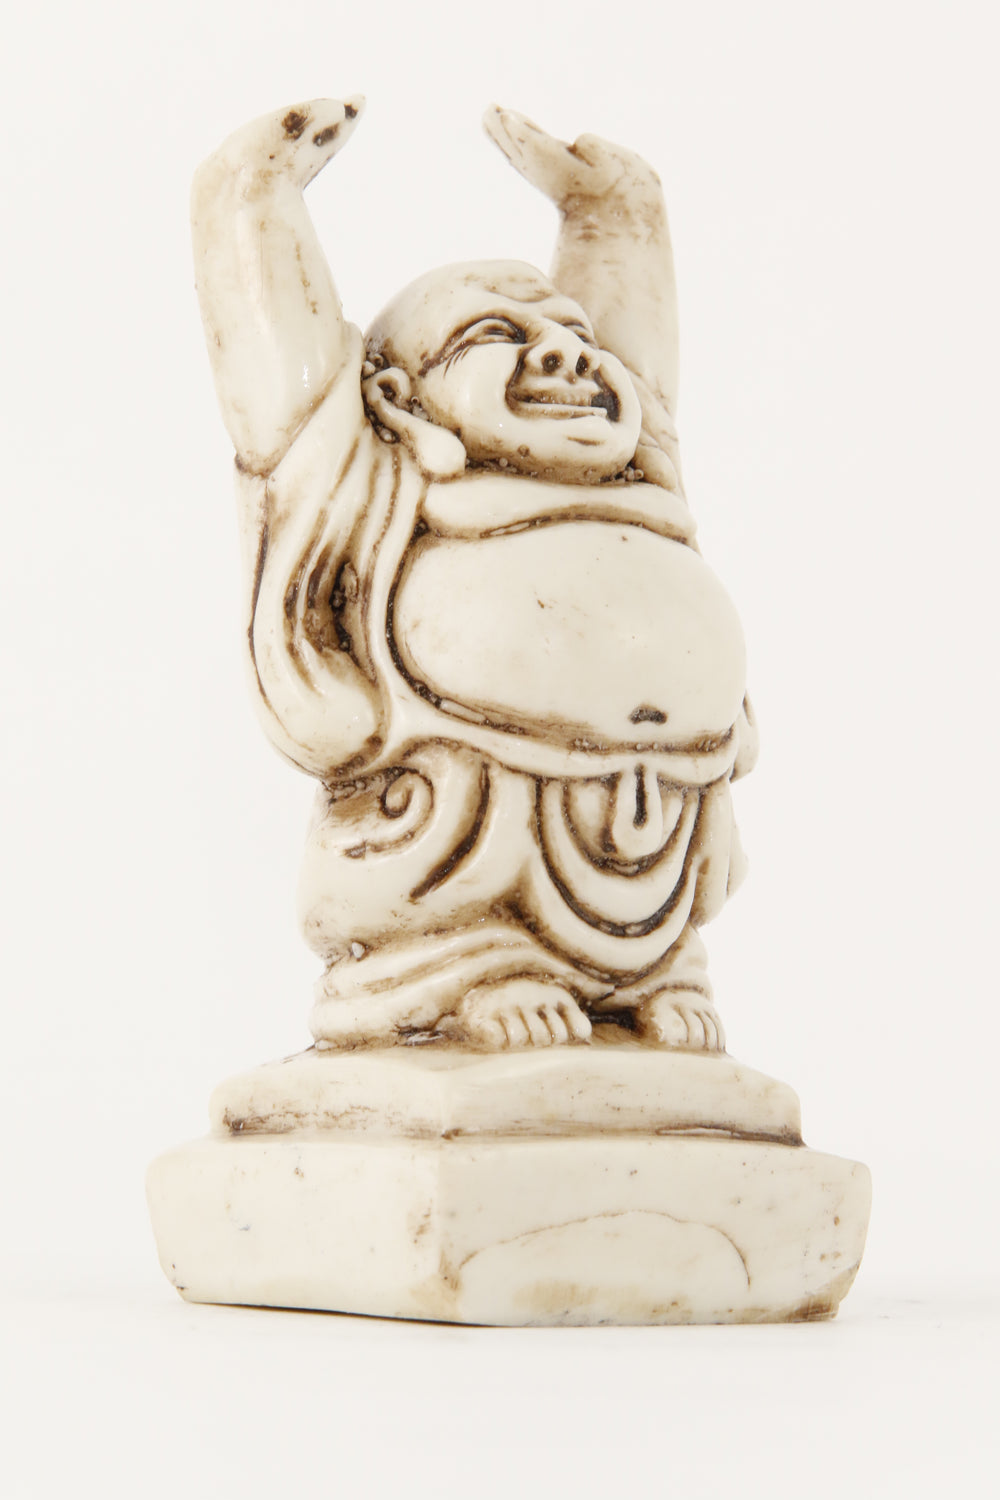 LAUGHING BUDDHA STATUE OFF-WHITE SMALL SIZESIDE VIEW